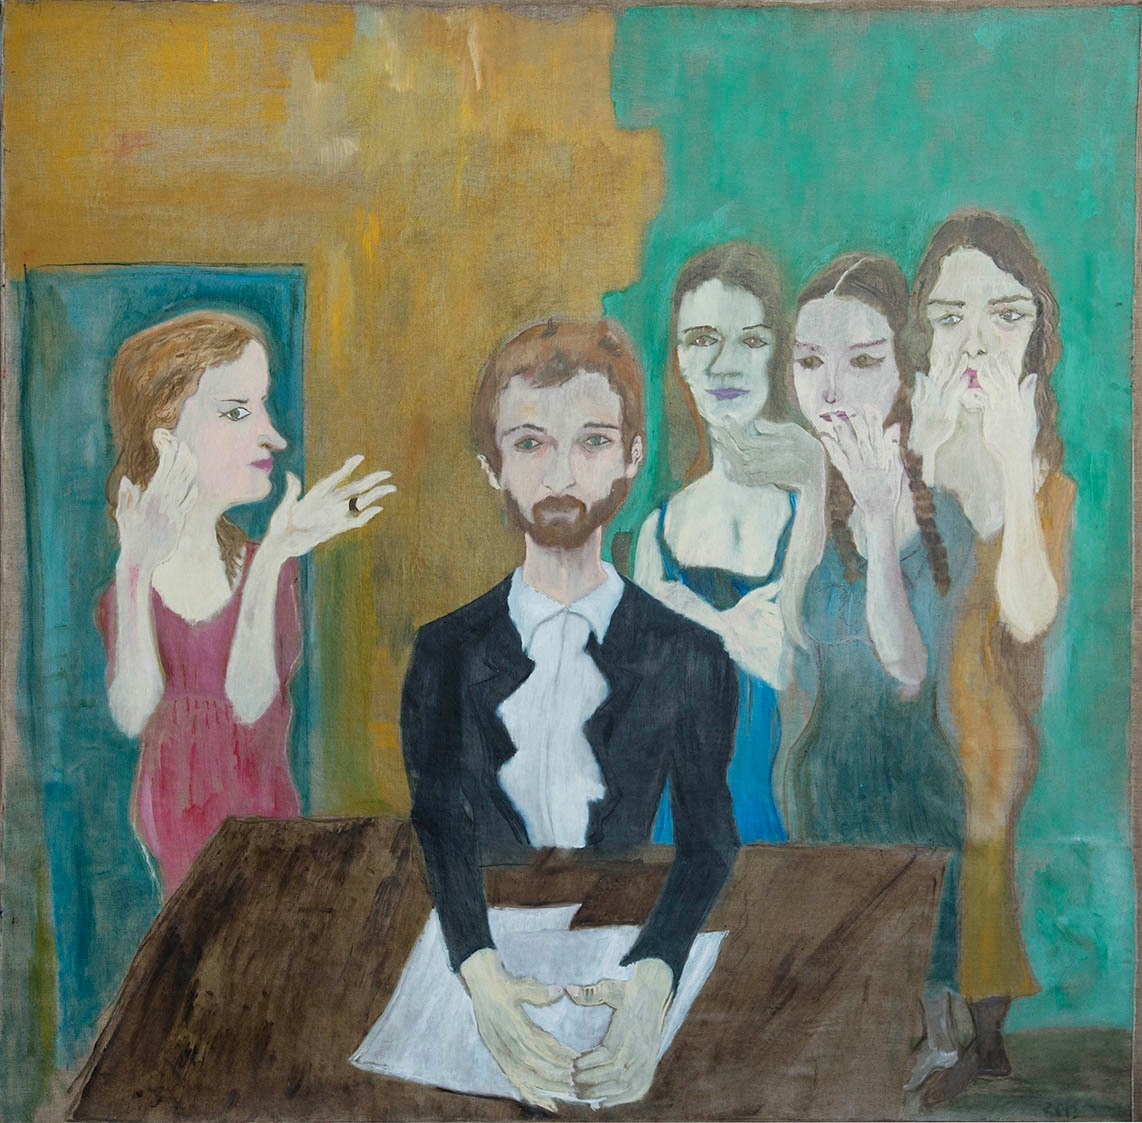 Levan.Chelidze–Gossip Women,–2014, 200x200cm, oil on canvas